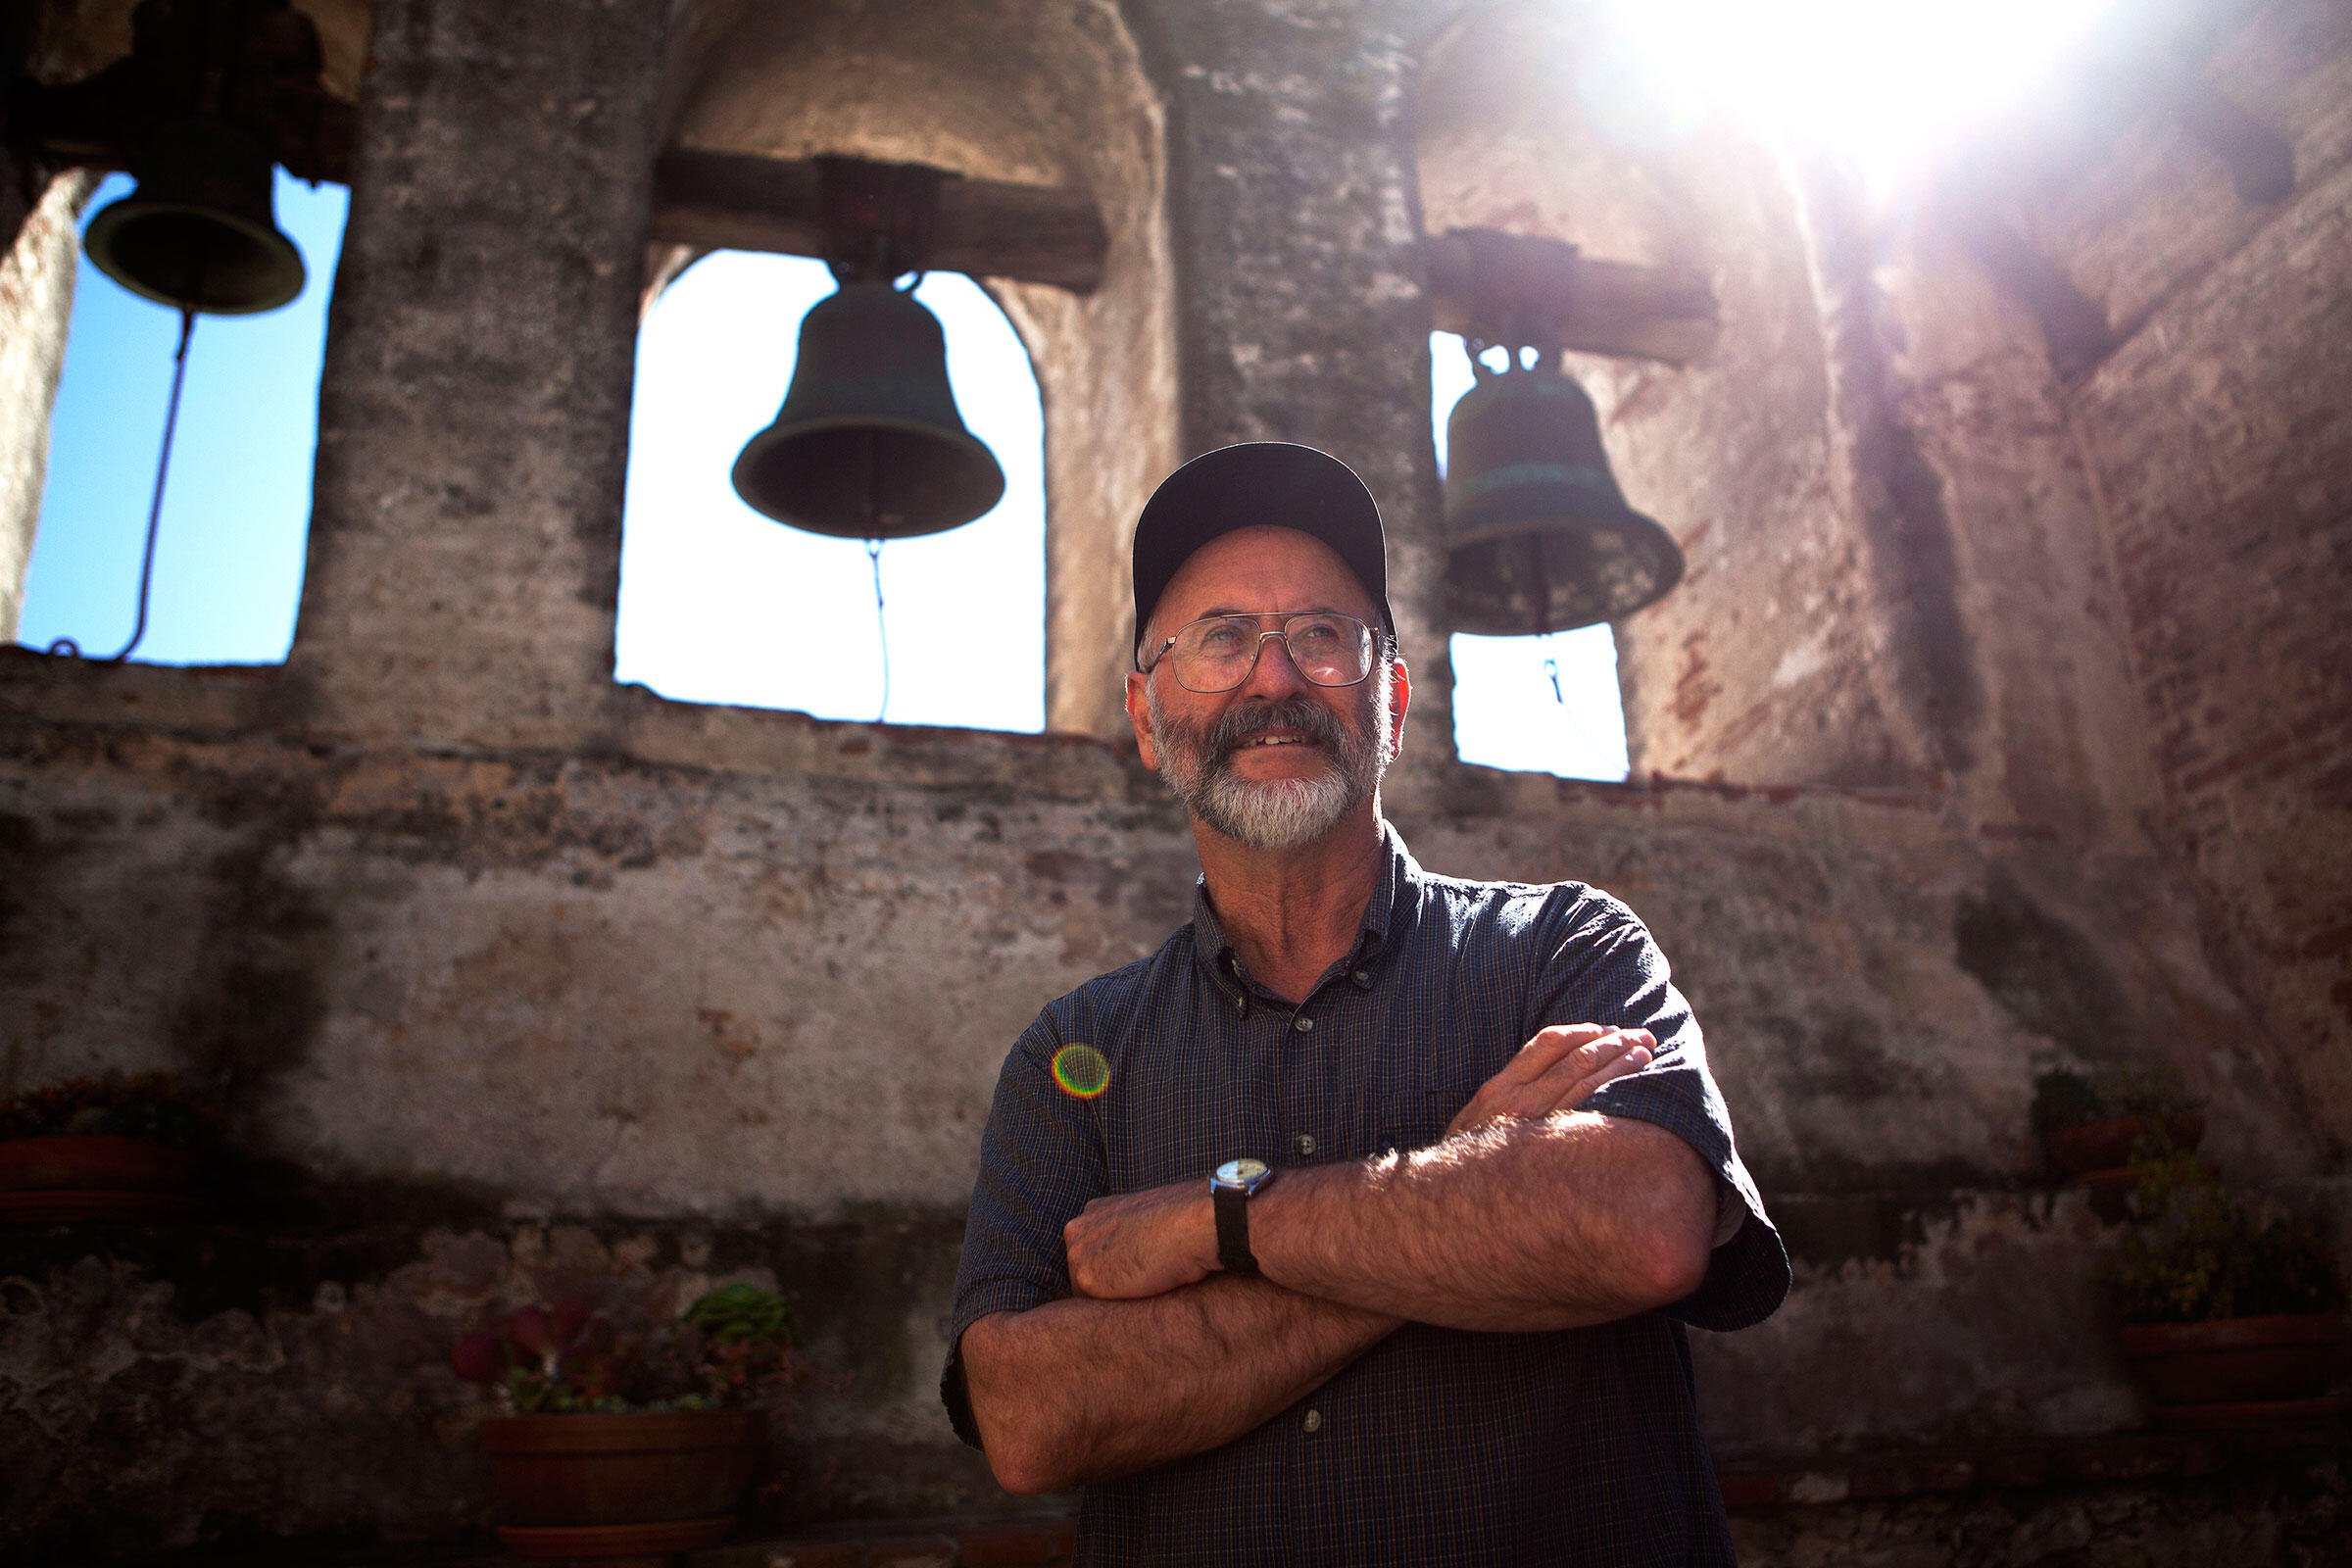 Ornithologist Charles Brown, of the University of Tulsa, stands before the bells of the Mission San Juan Capistrano, which are rung during an official ceremony at the annual Festival of the Swallows. Troy Harvey